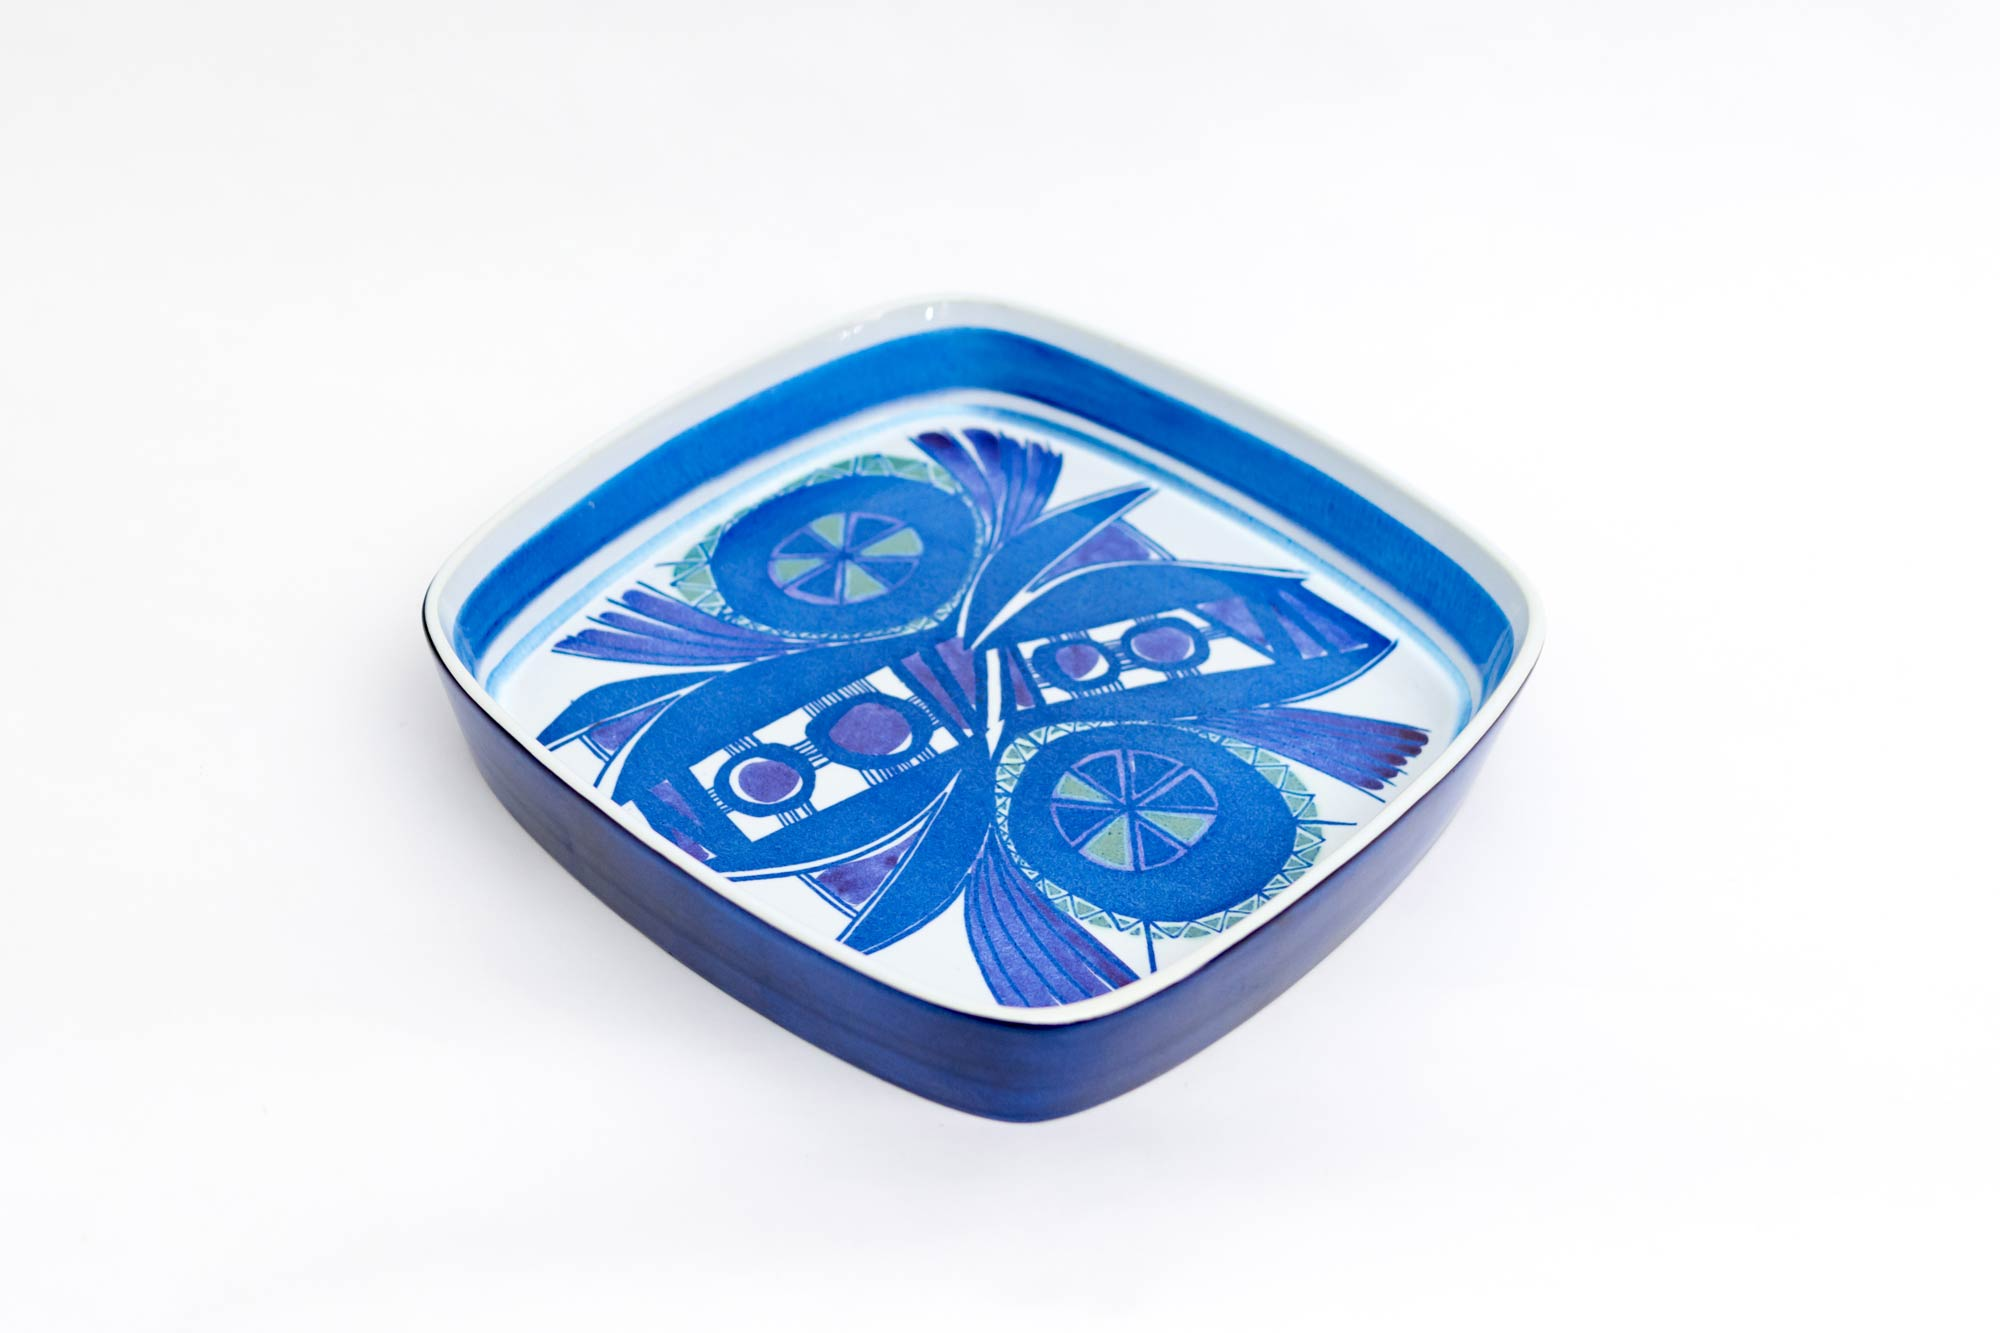 Tray by Inge Lise Koefoed